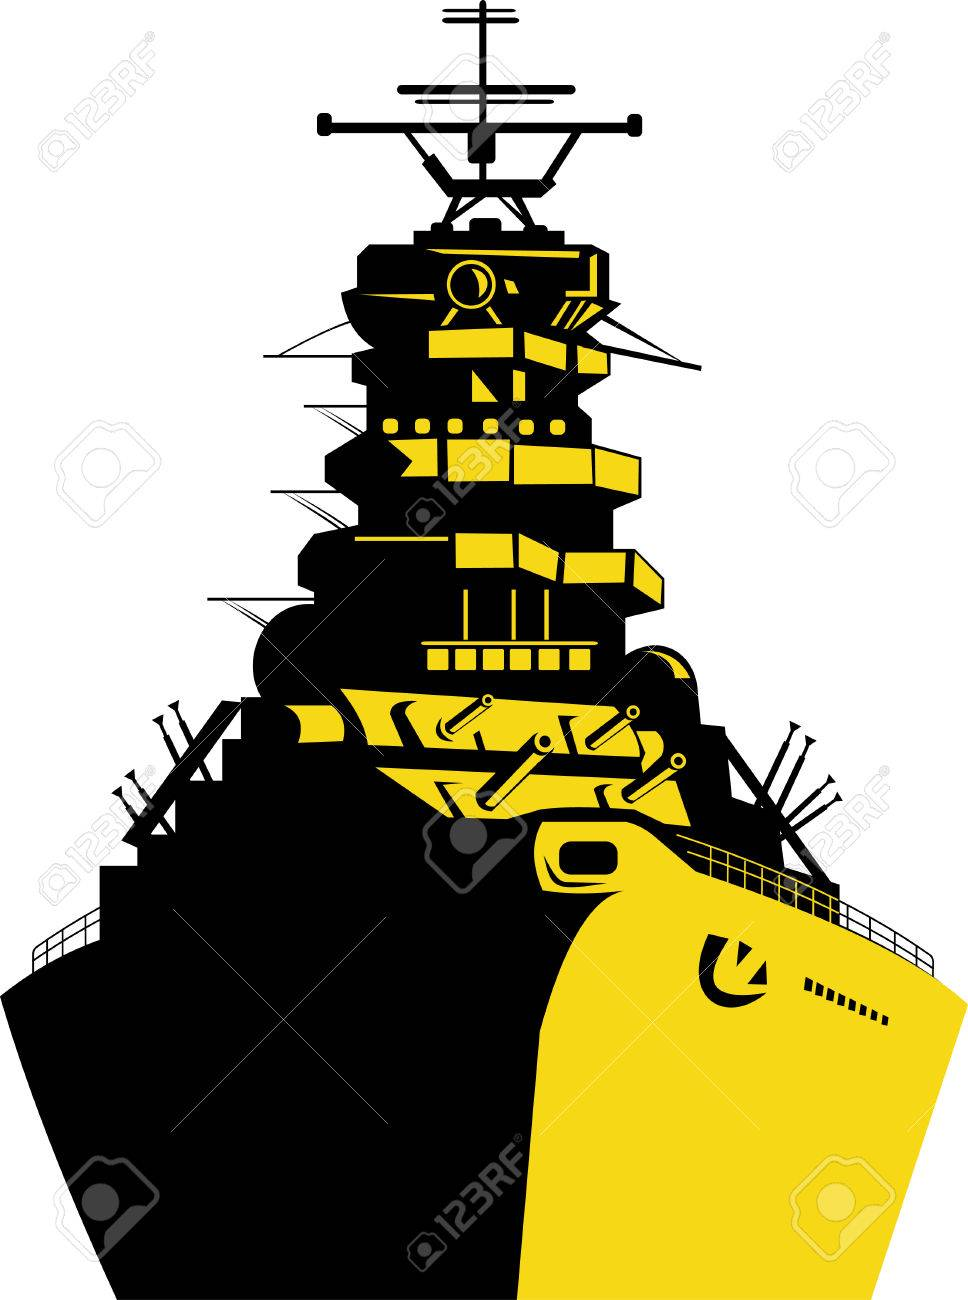 warship with big guns royalty free cliparts vectors and stock rh 123rf com battleship game clipart battleship clipart black and white